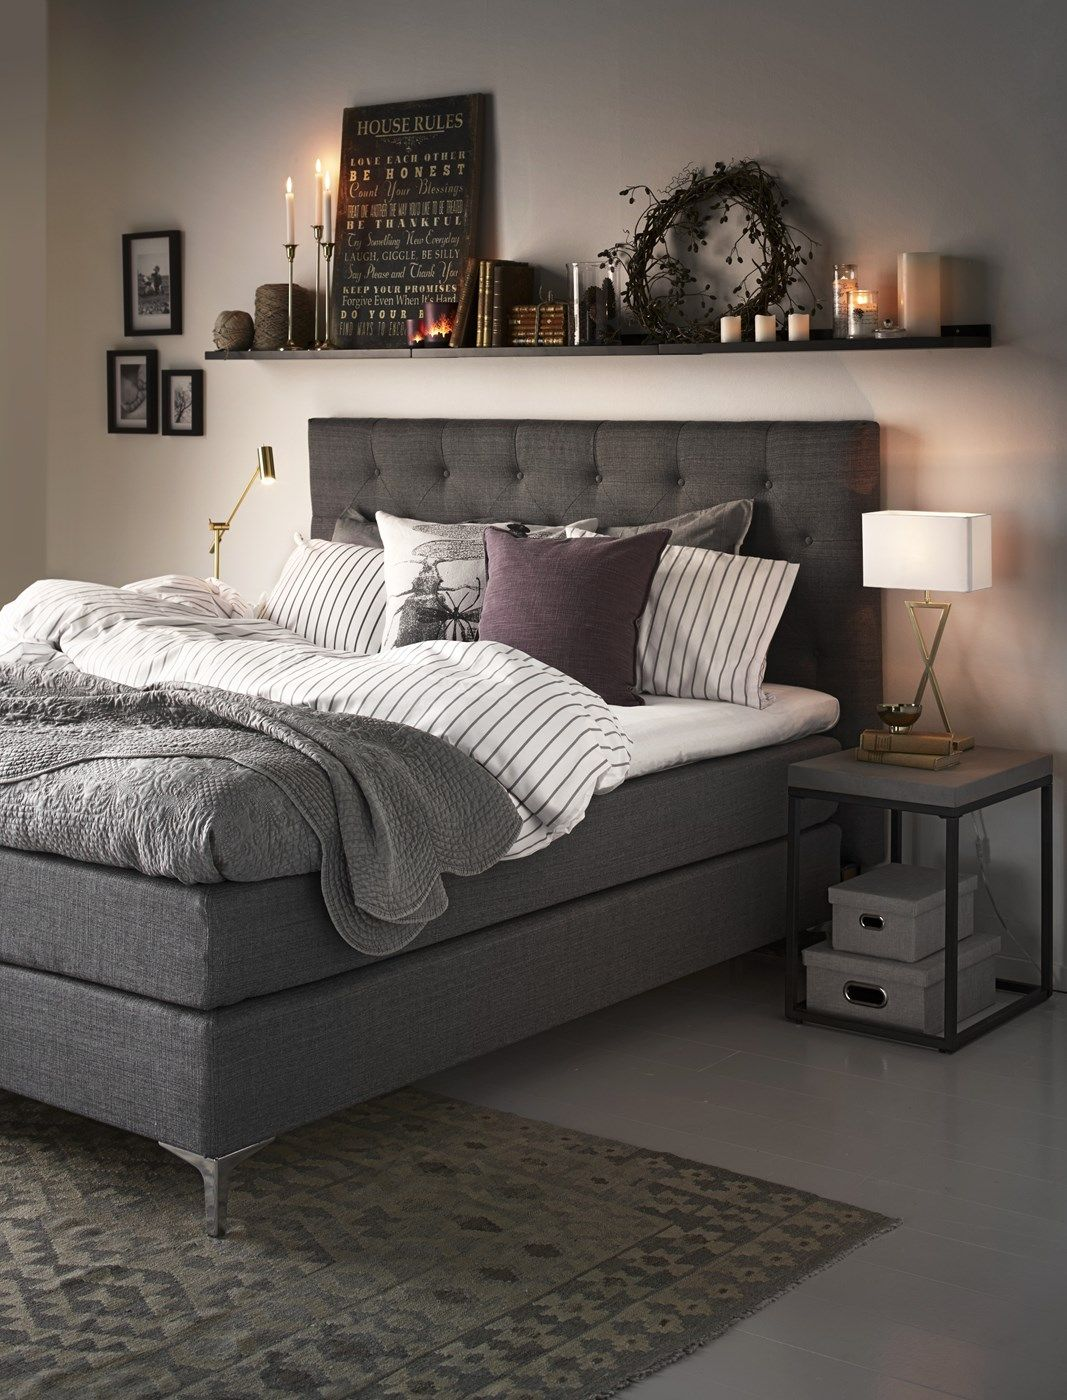 mio kontinentals ng relax home pinterest schlafzimmer schlafzimmer ideen und schlafzimmer. Black Bedroom Furniture Sets. Home Design Ideas